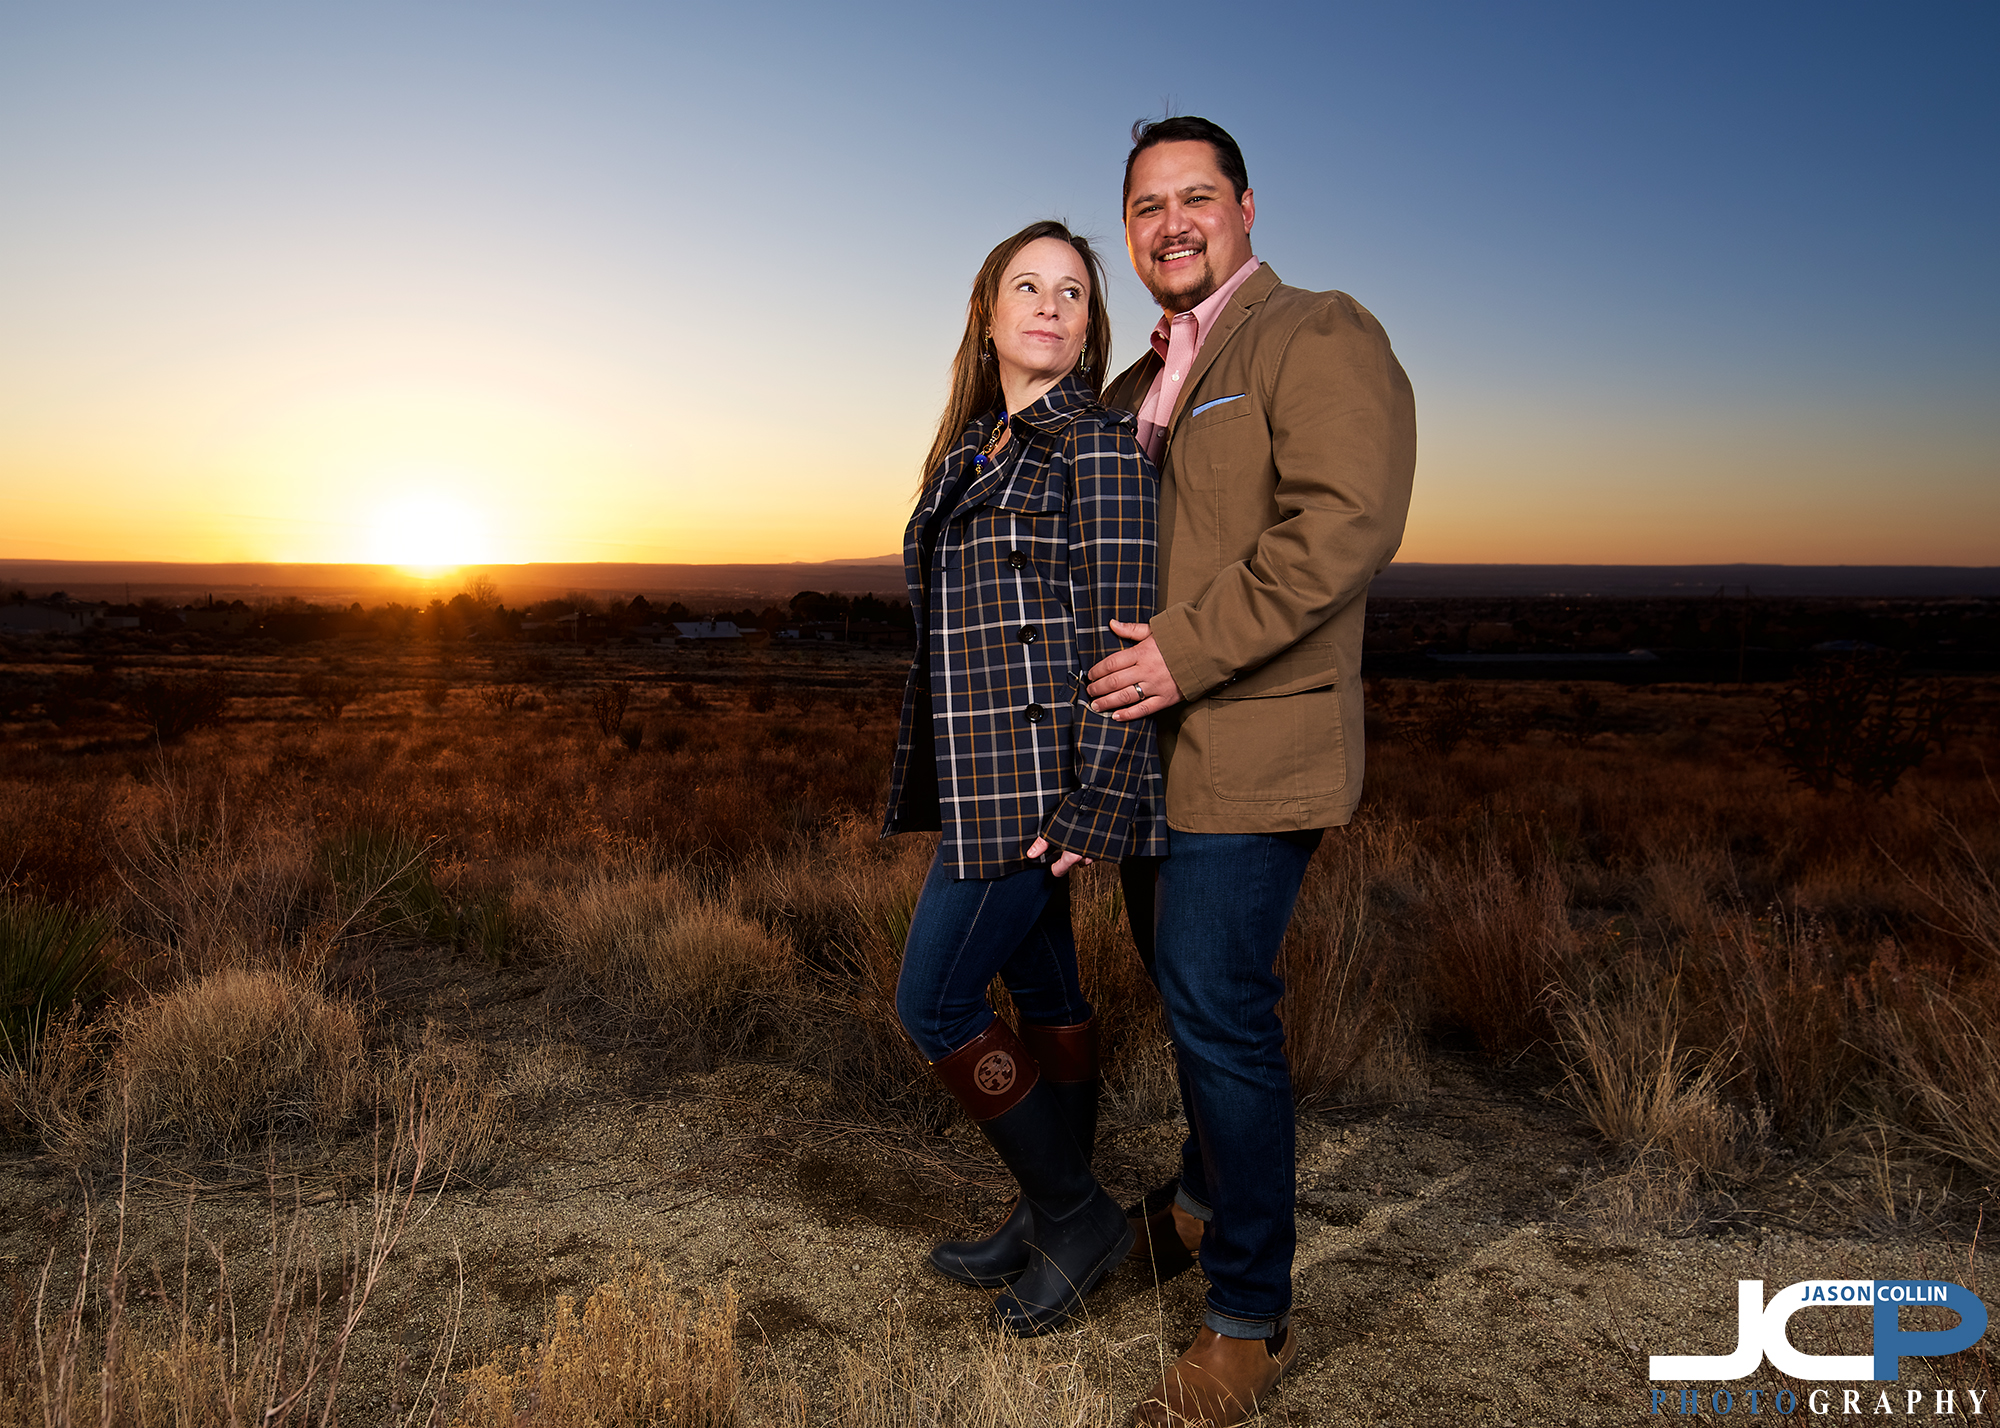 """Romantic sunset couple portrait in Albuquerque New Mexico -Nikon D750 with Tamron 15-30mm @ f/6.1 1/160th ISO 100 - Strobist: SB-800 in 32"""" octosoftbox and SB-600 with cap diffuser triggered by Pocket Wizard Flex TT5"""